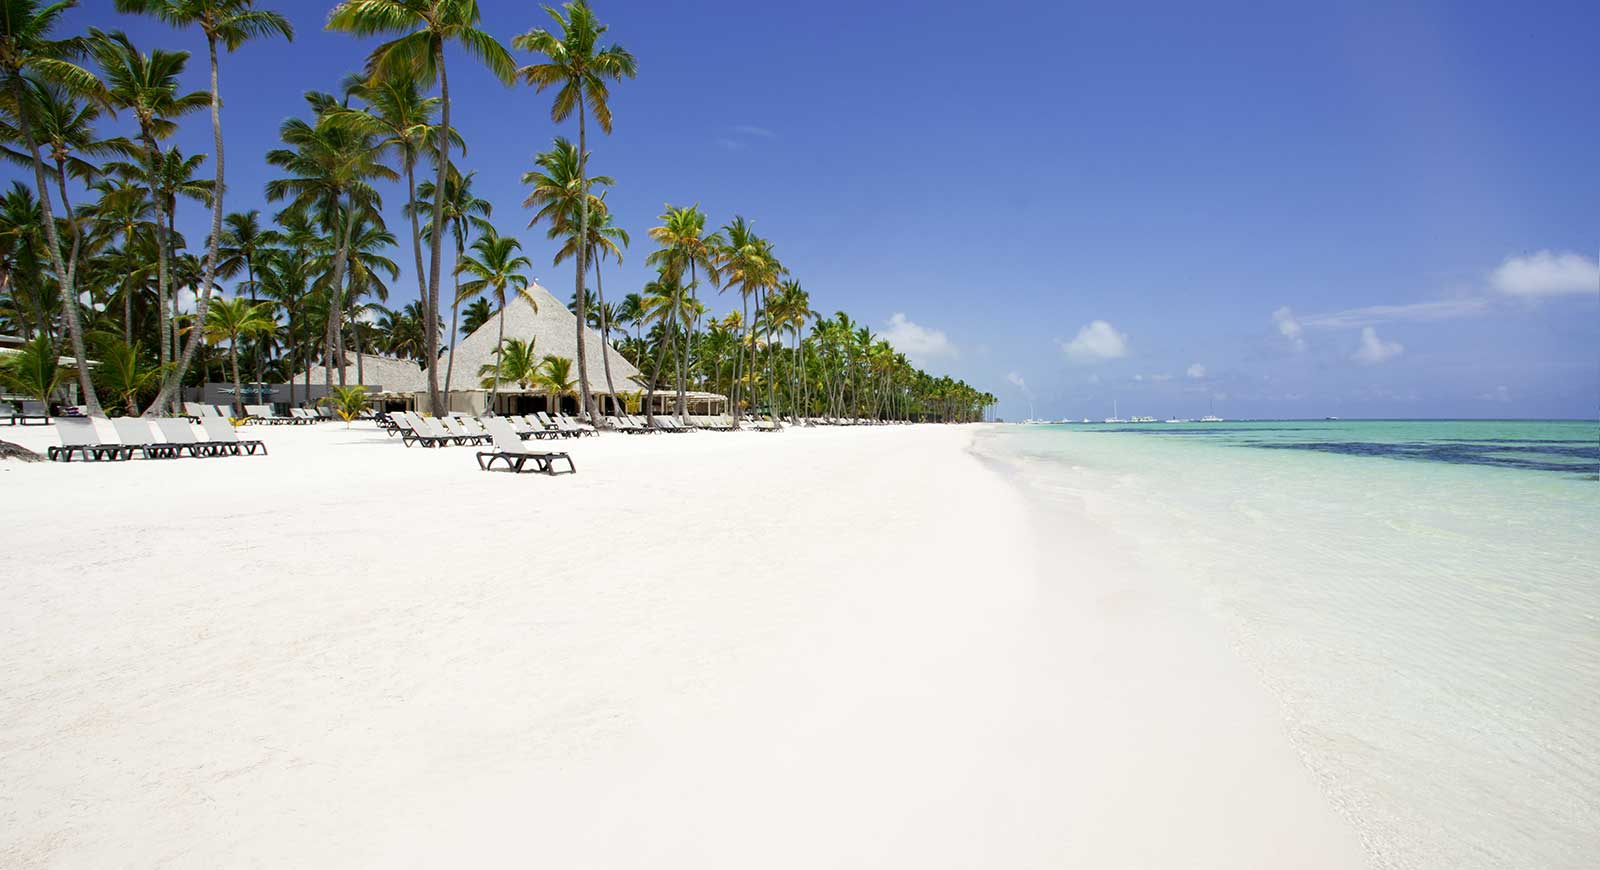 339-beach-17-hotel-barcelo-bavaro-beach_